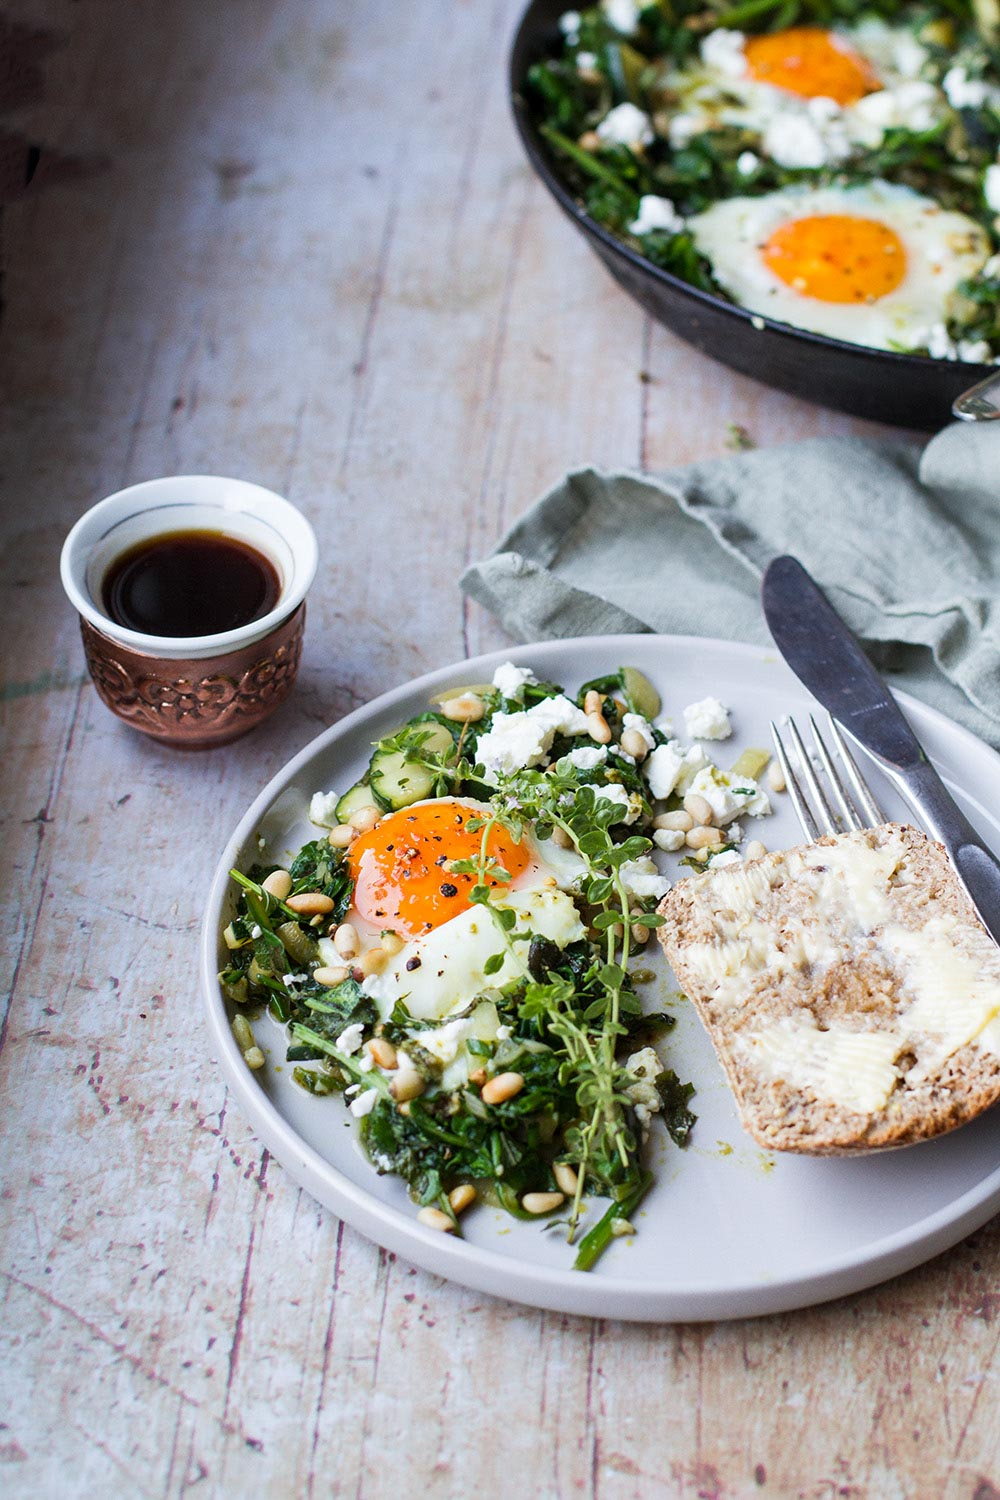 Serving suggestion for shakshuka, with half a ciabatta and Bosnian coffee on the side.